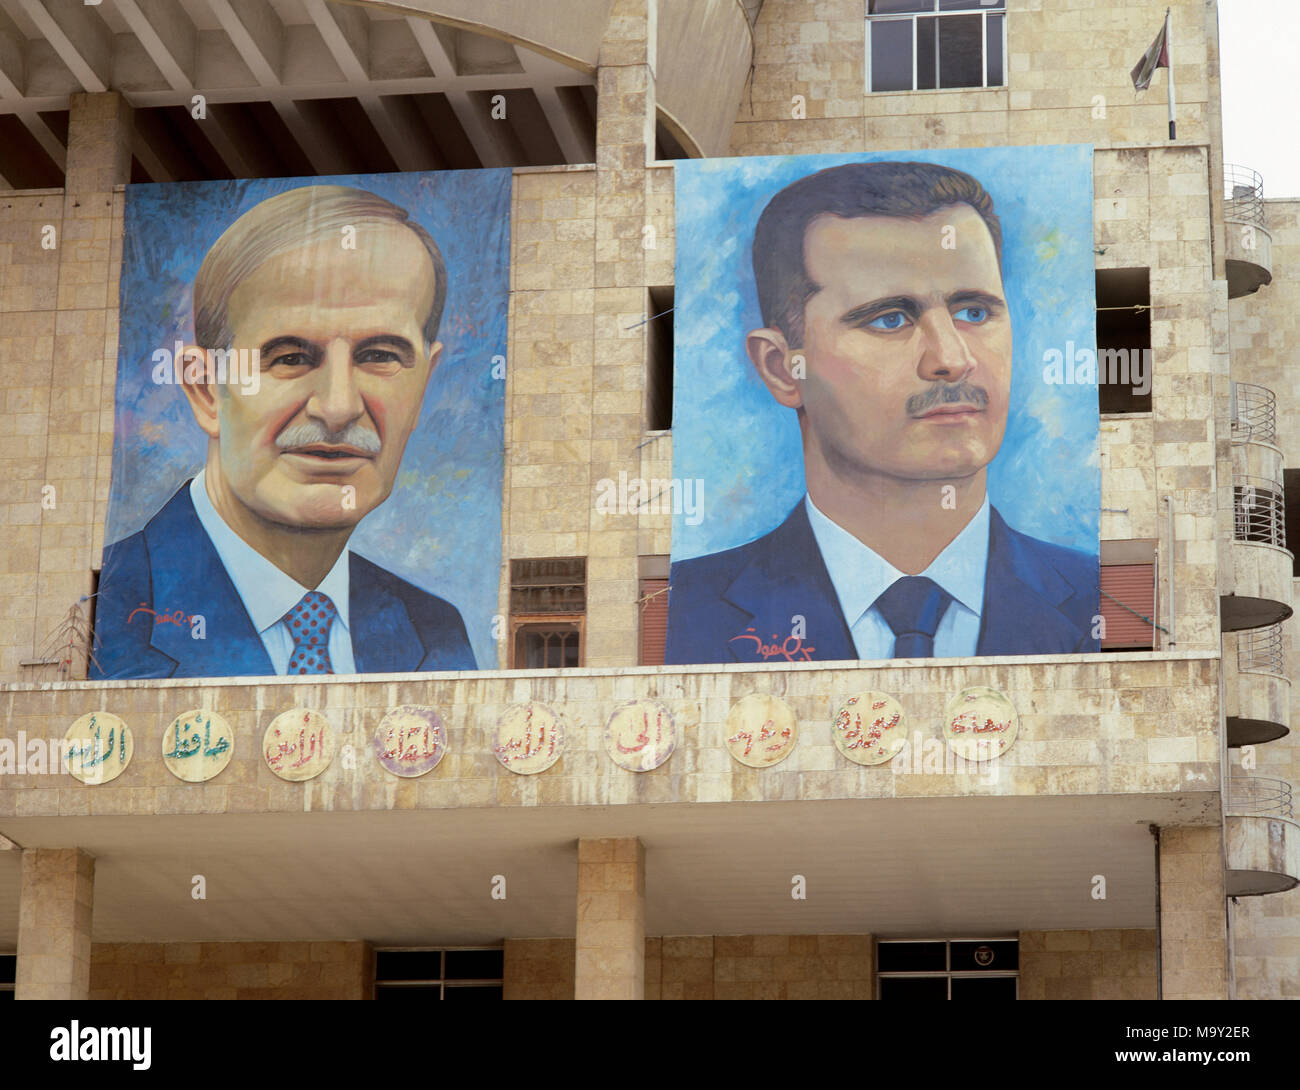 Presidents of Syria. Left: Hafez al-Asad (1930-2000), right: Basahr al-Assad (1965). Large portraits. Hamidie souk. Damascus. Picture took before the Civil War. - Stock Image